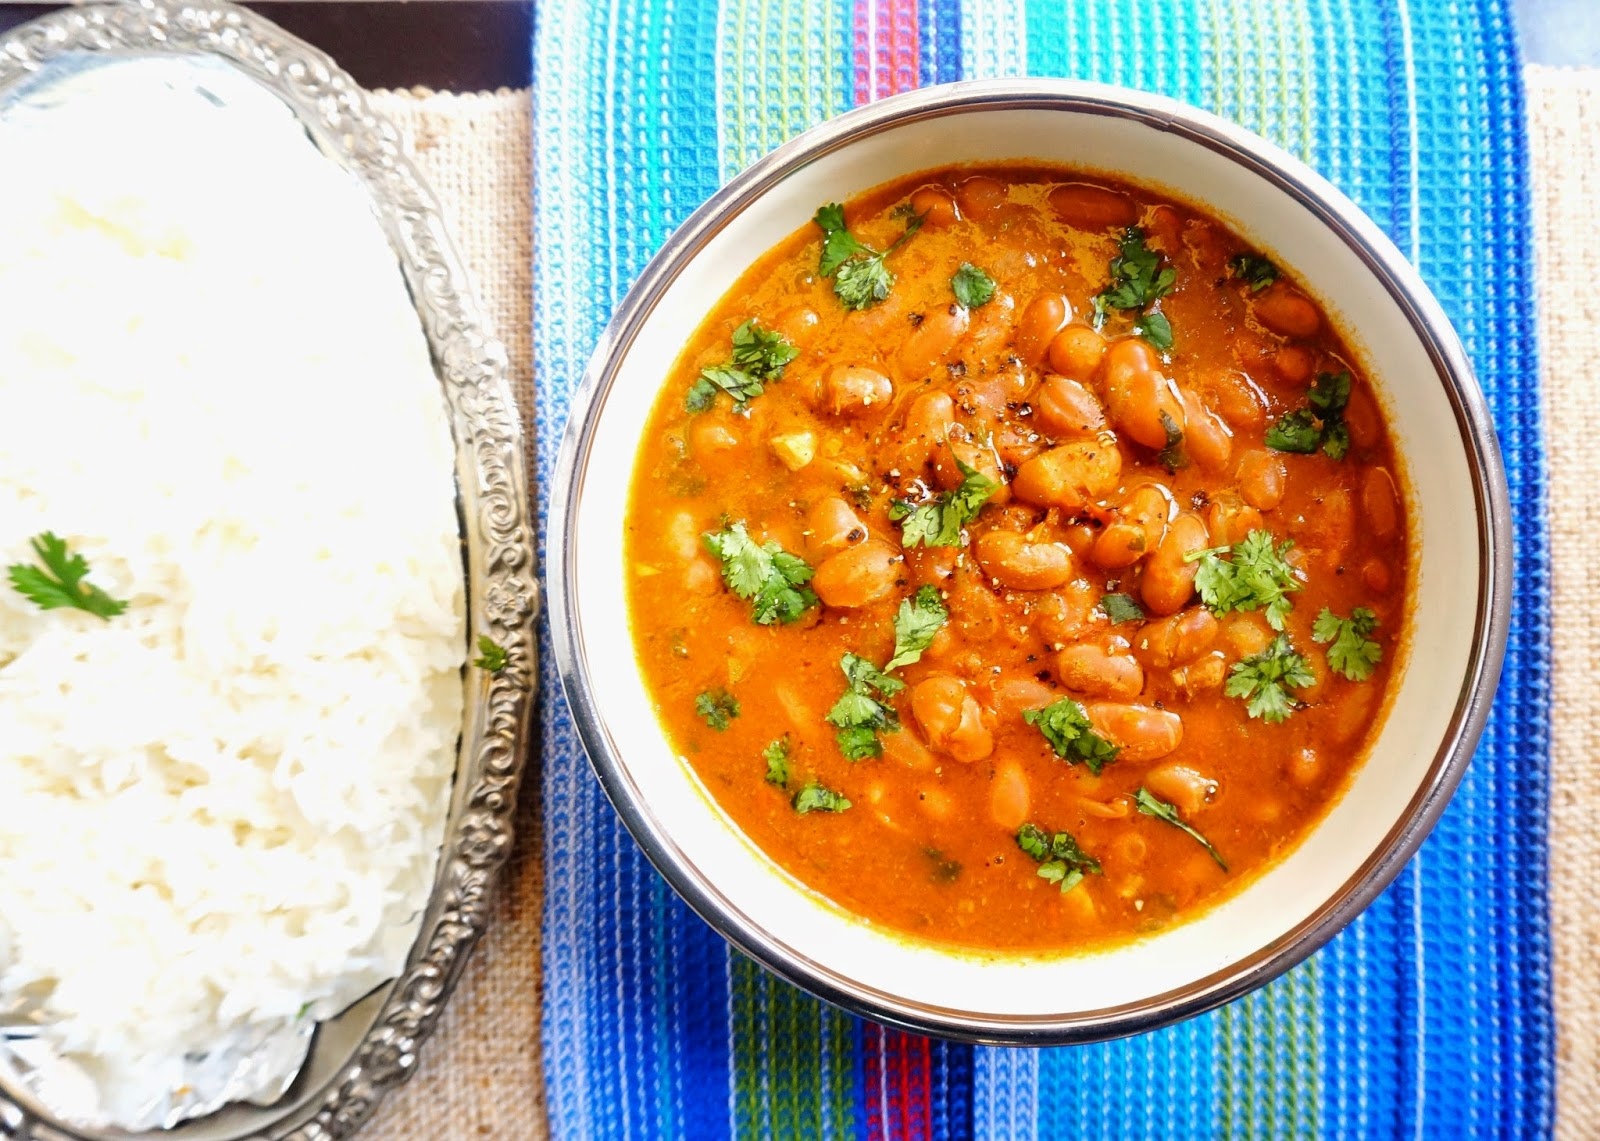 Rajma chawal,Kidney beans,rajma,curry,Indian